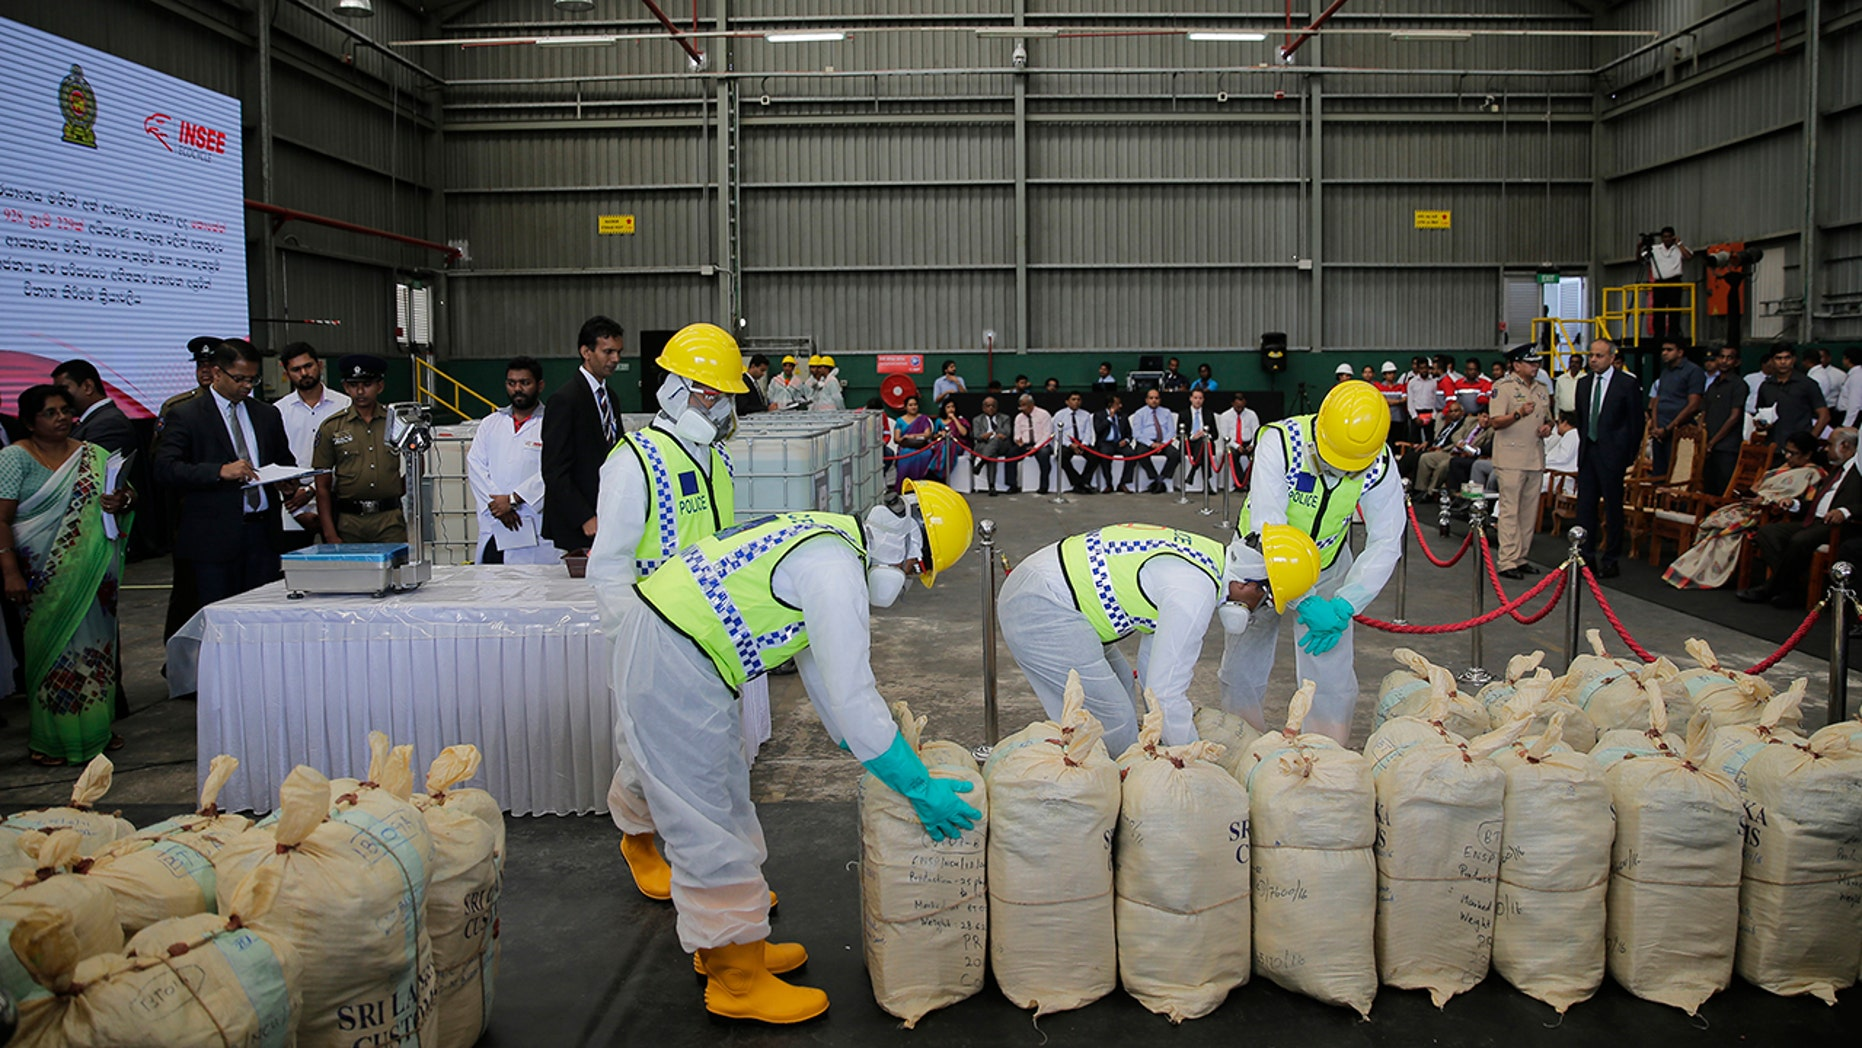 Sri Lankan police officers in protective outfits prepare to destroy a haul of seized cocaine during a ceremony at an industrial facility in Katunayaka, outskirts of Colombo, Sri Lanka in January.